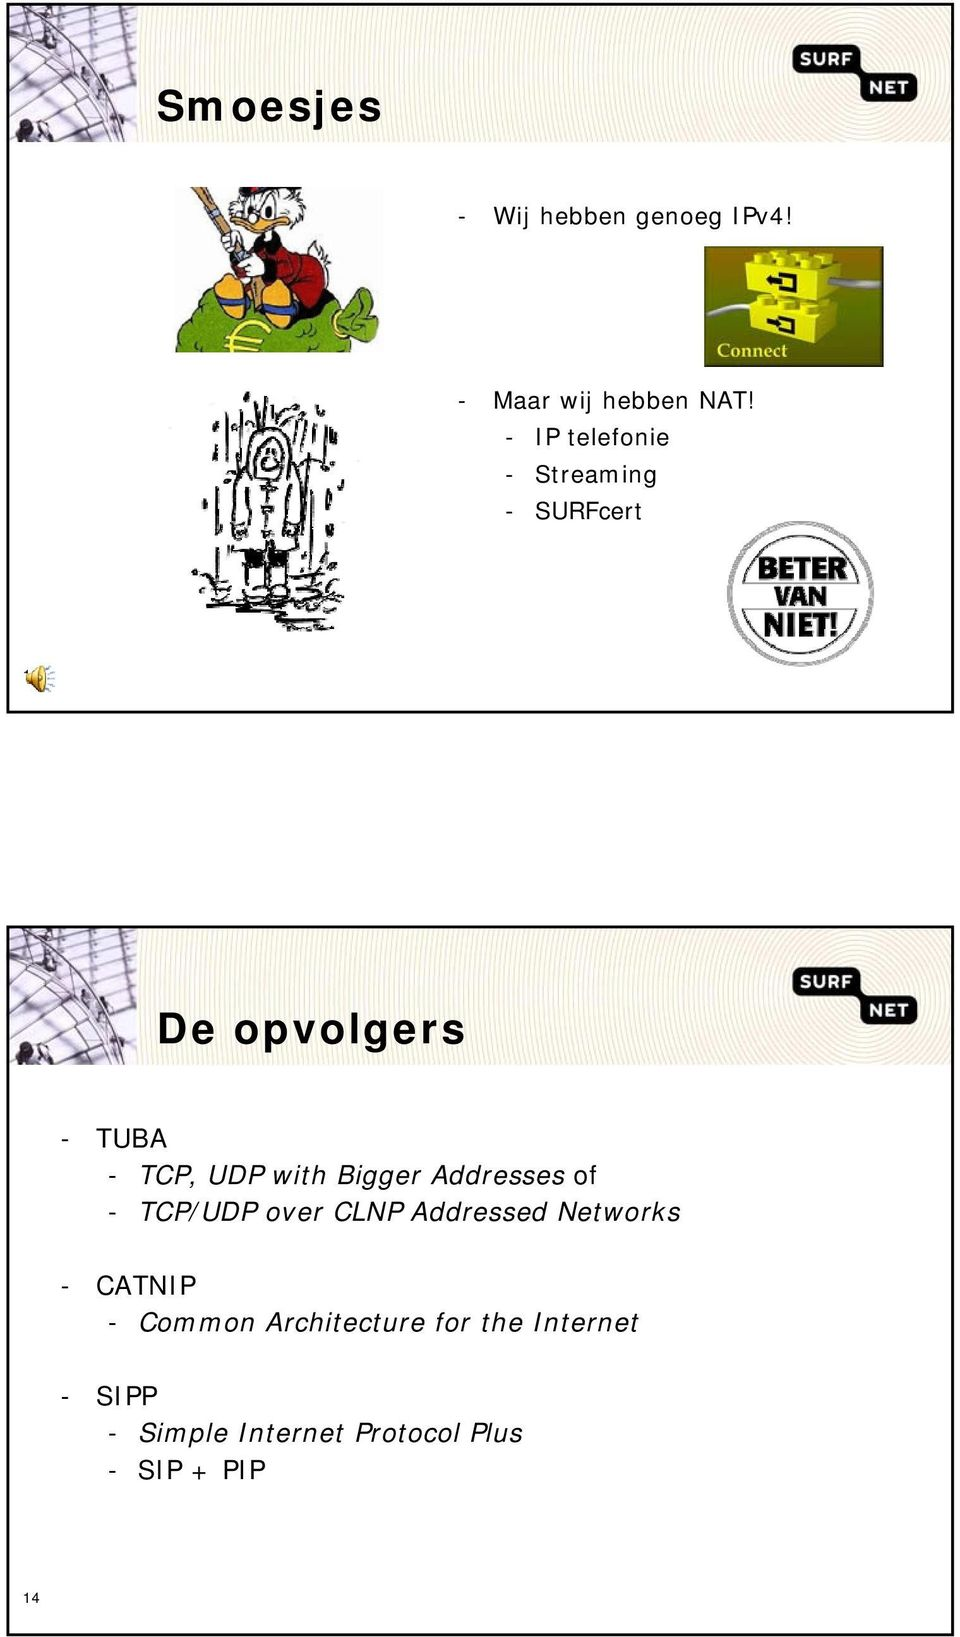 with Bigger Addresses of - TCP/UDP over CLNP Addressed Networks - CATNIP